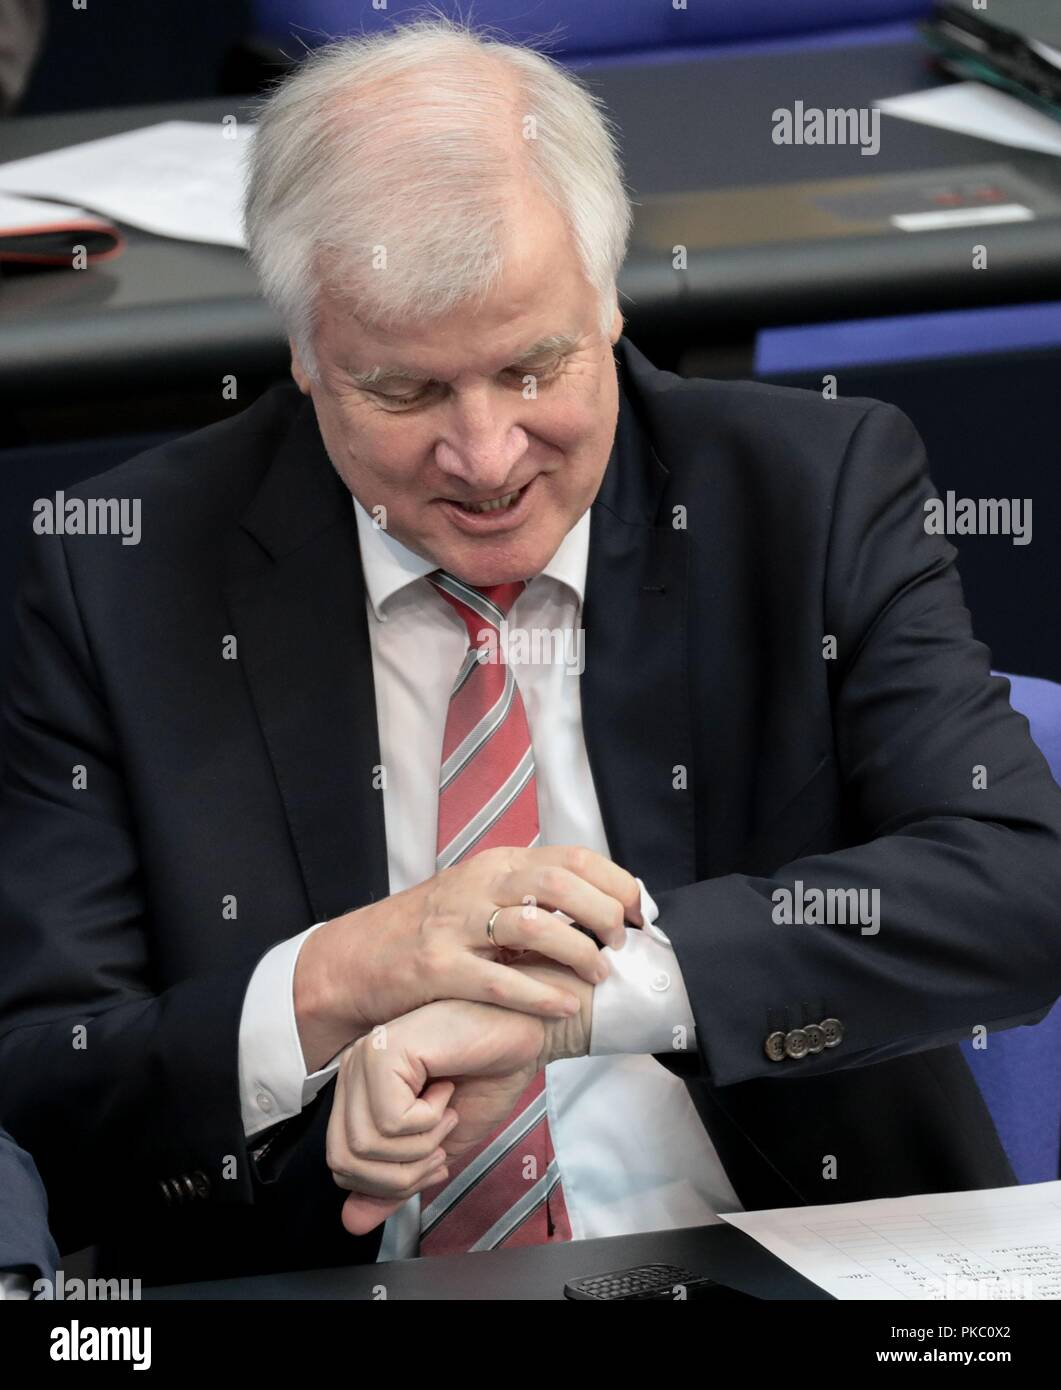 Berlin, Germany. 12th Sep, 2018. Horst Seehofer (CSU), Federal Minister of the Interior, for Building and Home, looks at the clock during the general debate in the German Bundestag. The main topic of the 48th session of the 19th legislative period is the draft of the Federal Budget 2019 submitted by the Federal Government and the Federal Finance Plan 2018 to 2022 with the general debate on the budget of the Federal Chancellery. Credit: dpa picture alliance/Alamy Live News - Stock Image